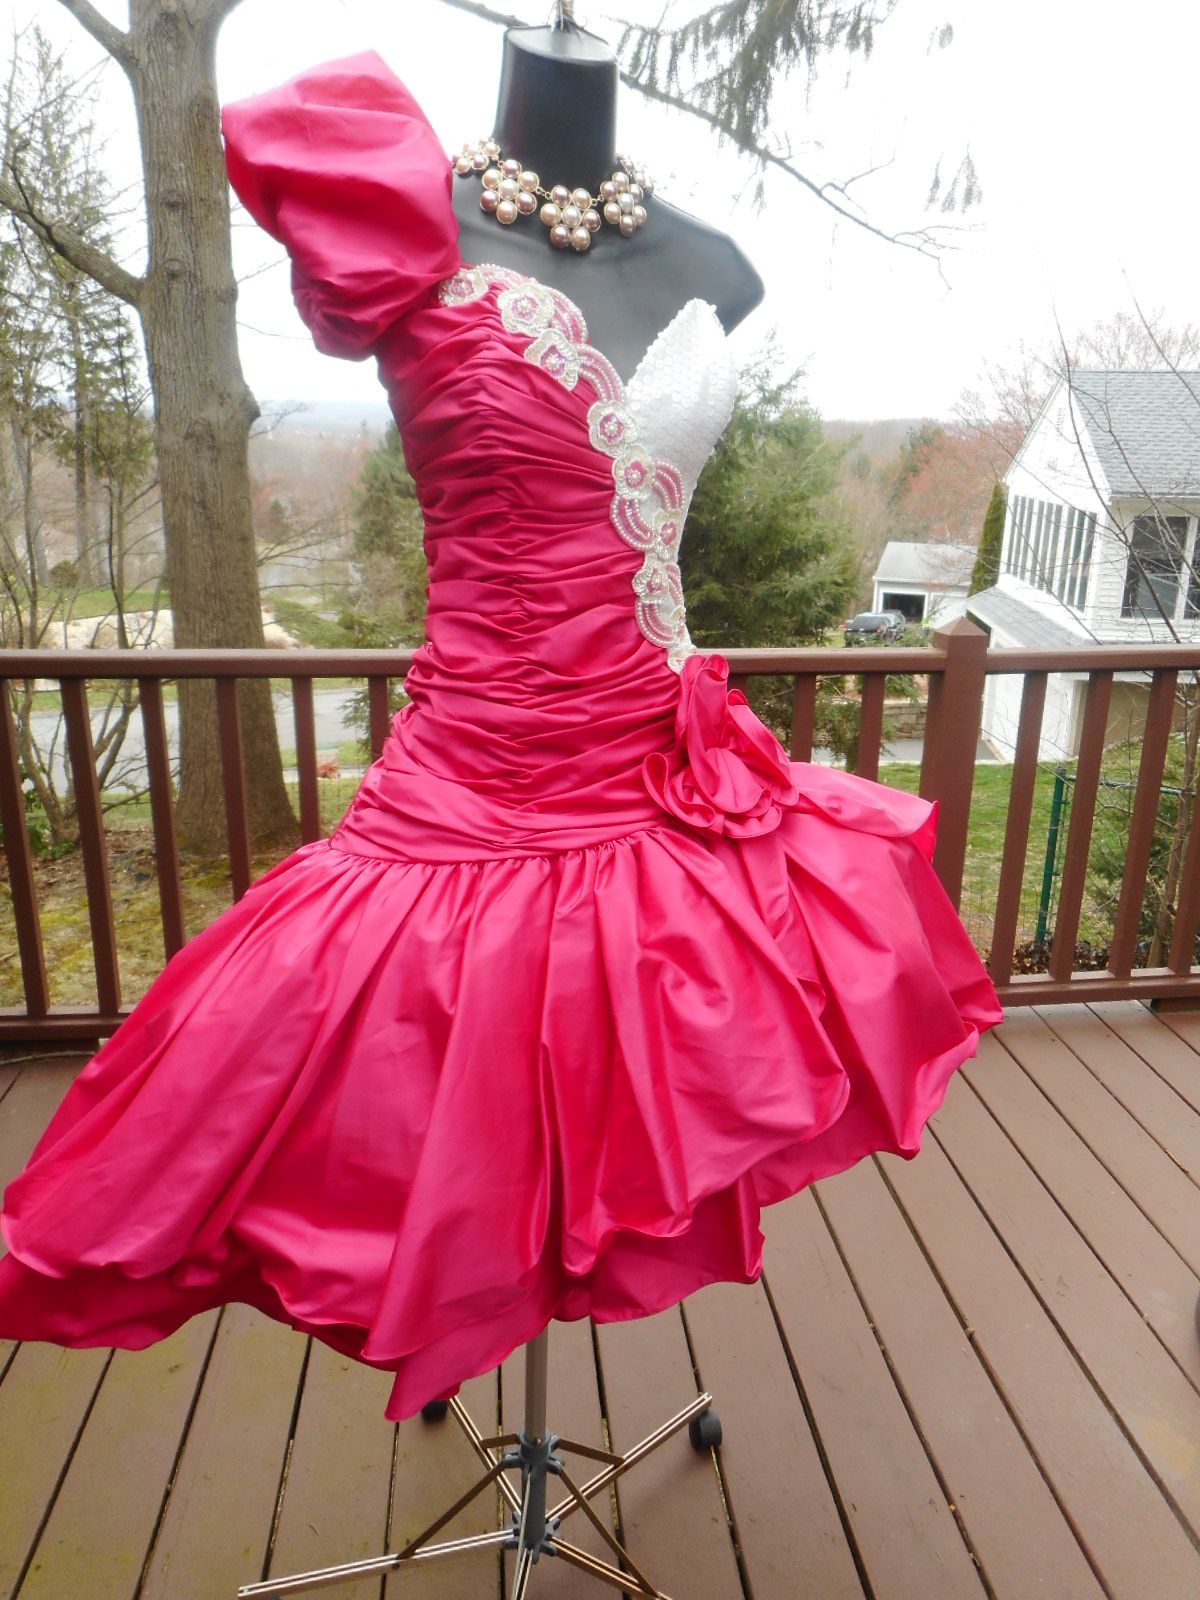 Available On My Rental Site Vintage 80s Prom Dresses On Facebook 80s Prom Dress Dresses Lovely Dresses [ 1600 x 1200 Pixel ]